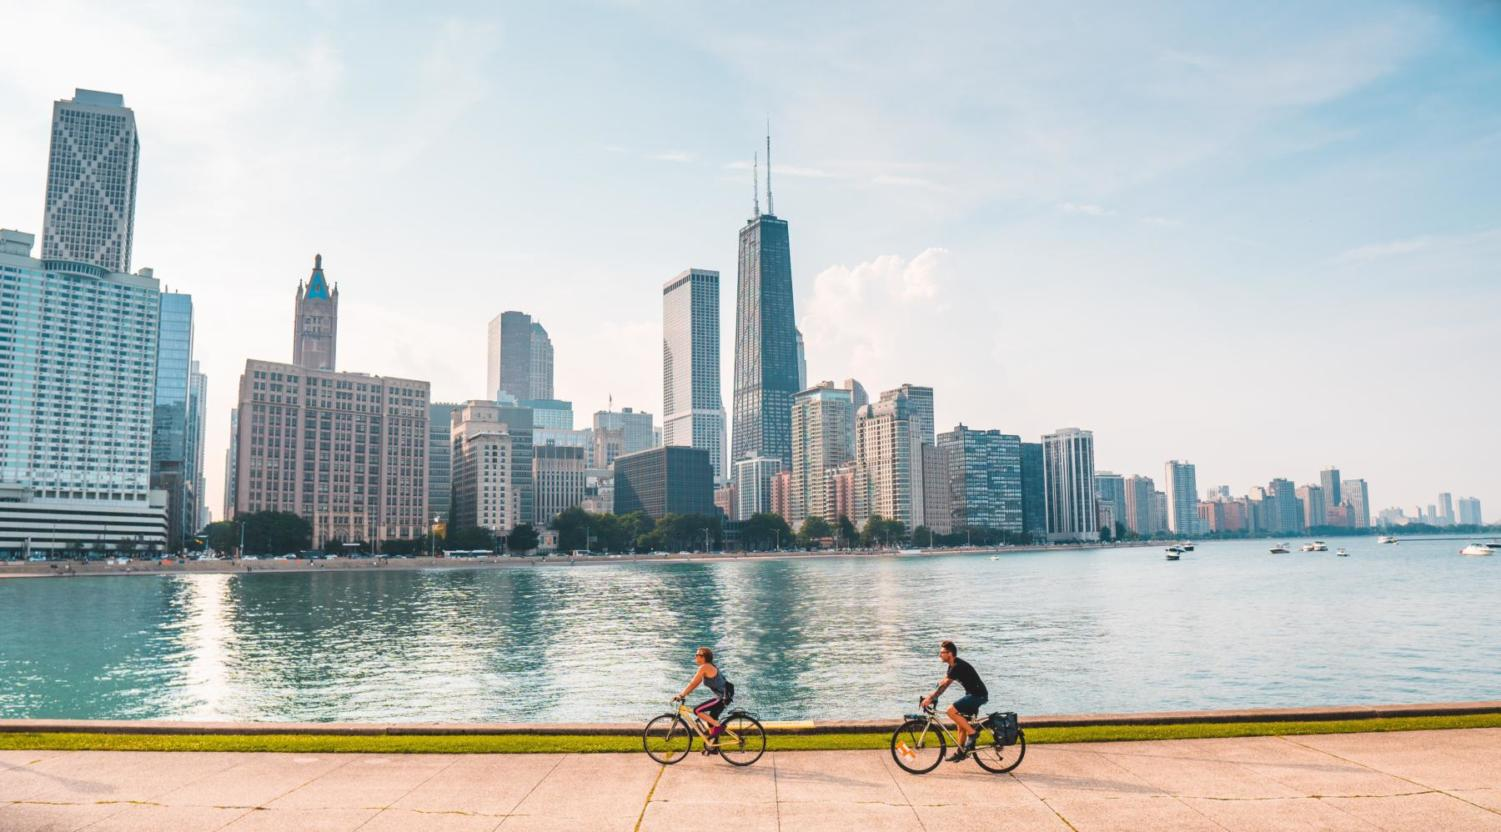 From Ballparks to the Magnificent Mile: Best Places to Visit in Chicago This Spring